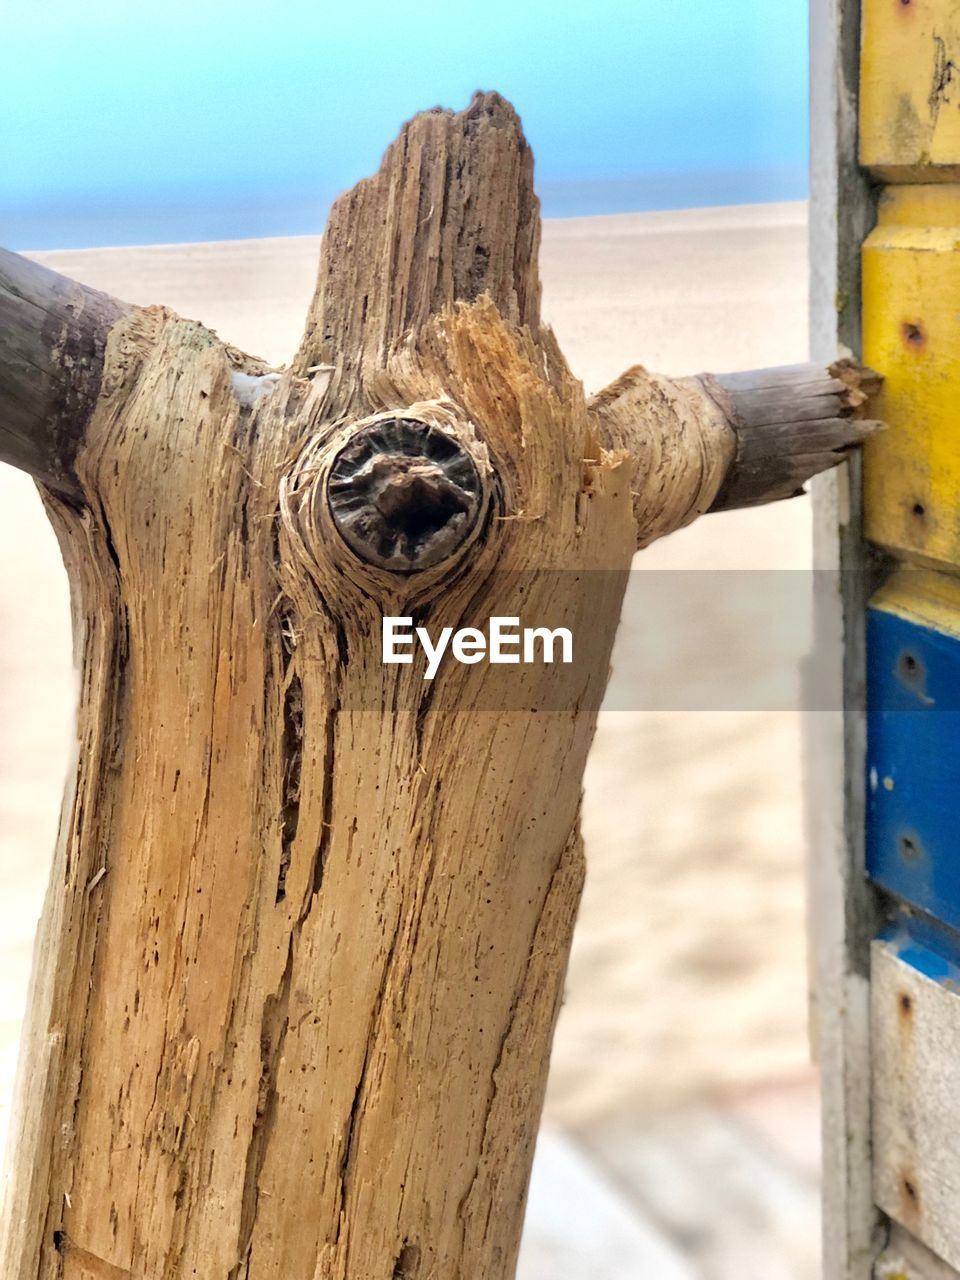 wood - material, focus on foreground, day, close-up, no people, metal, post, wooden post, outdoors, nature, weathered, textured, old, sky, security, sea, rusty, protection, safety, wood, nail